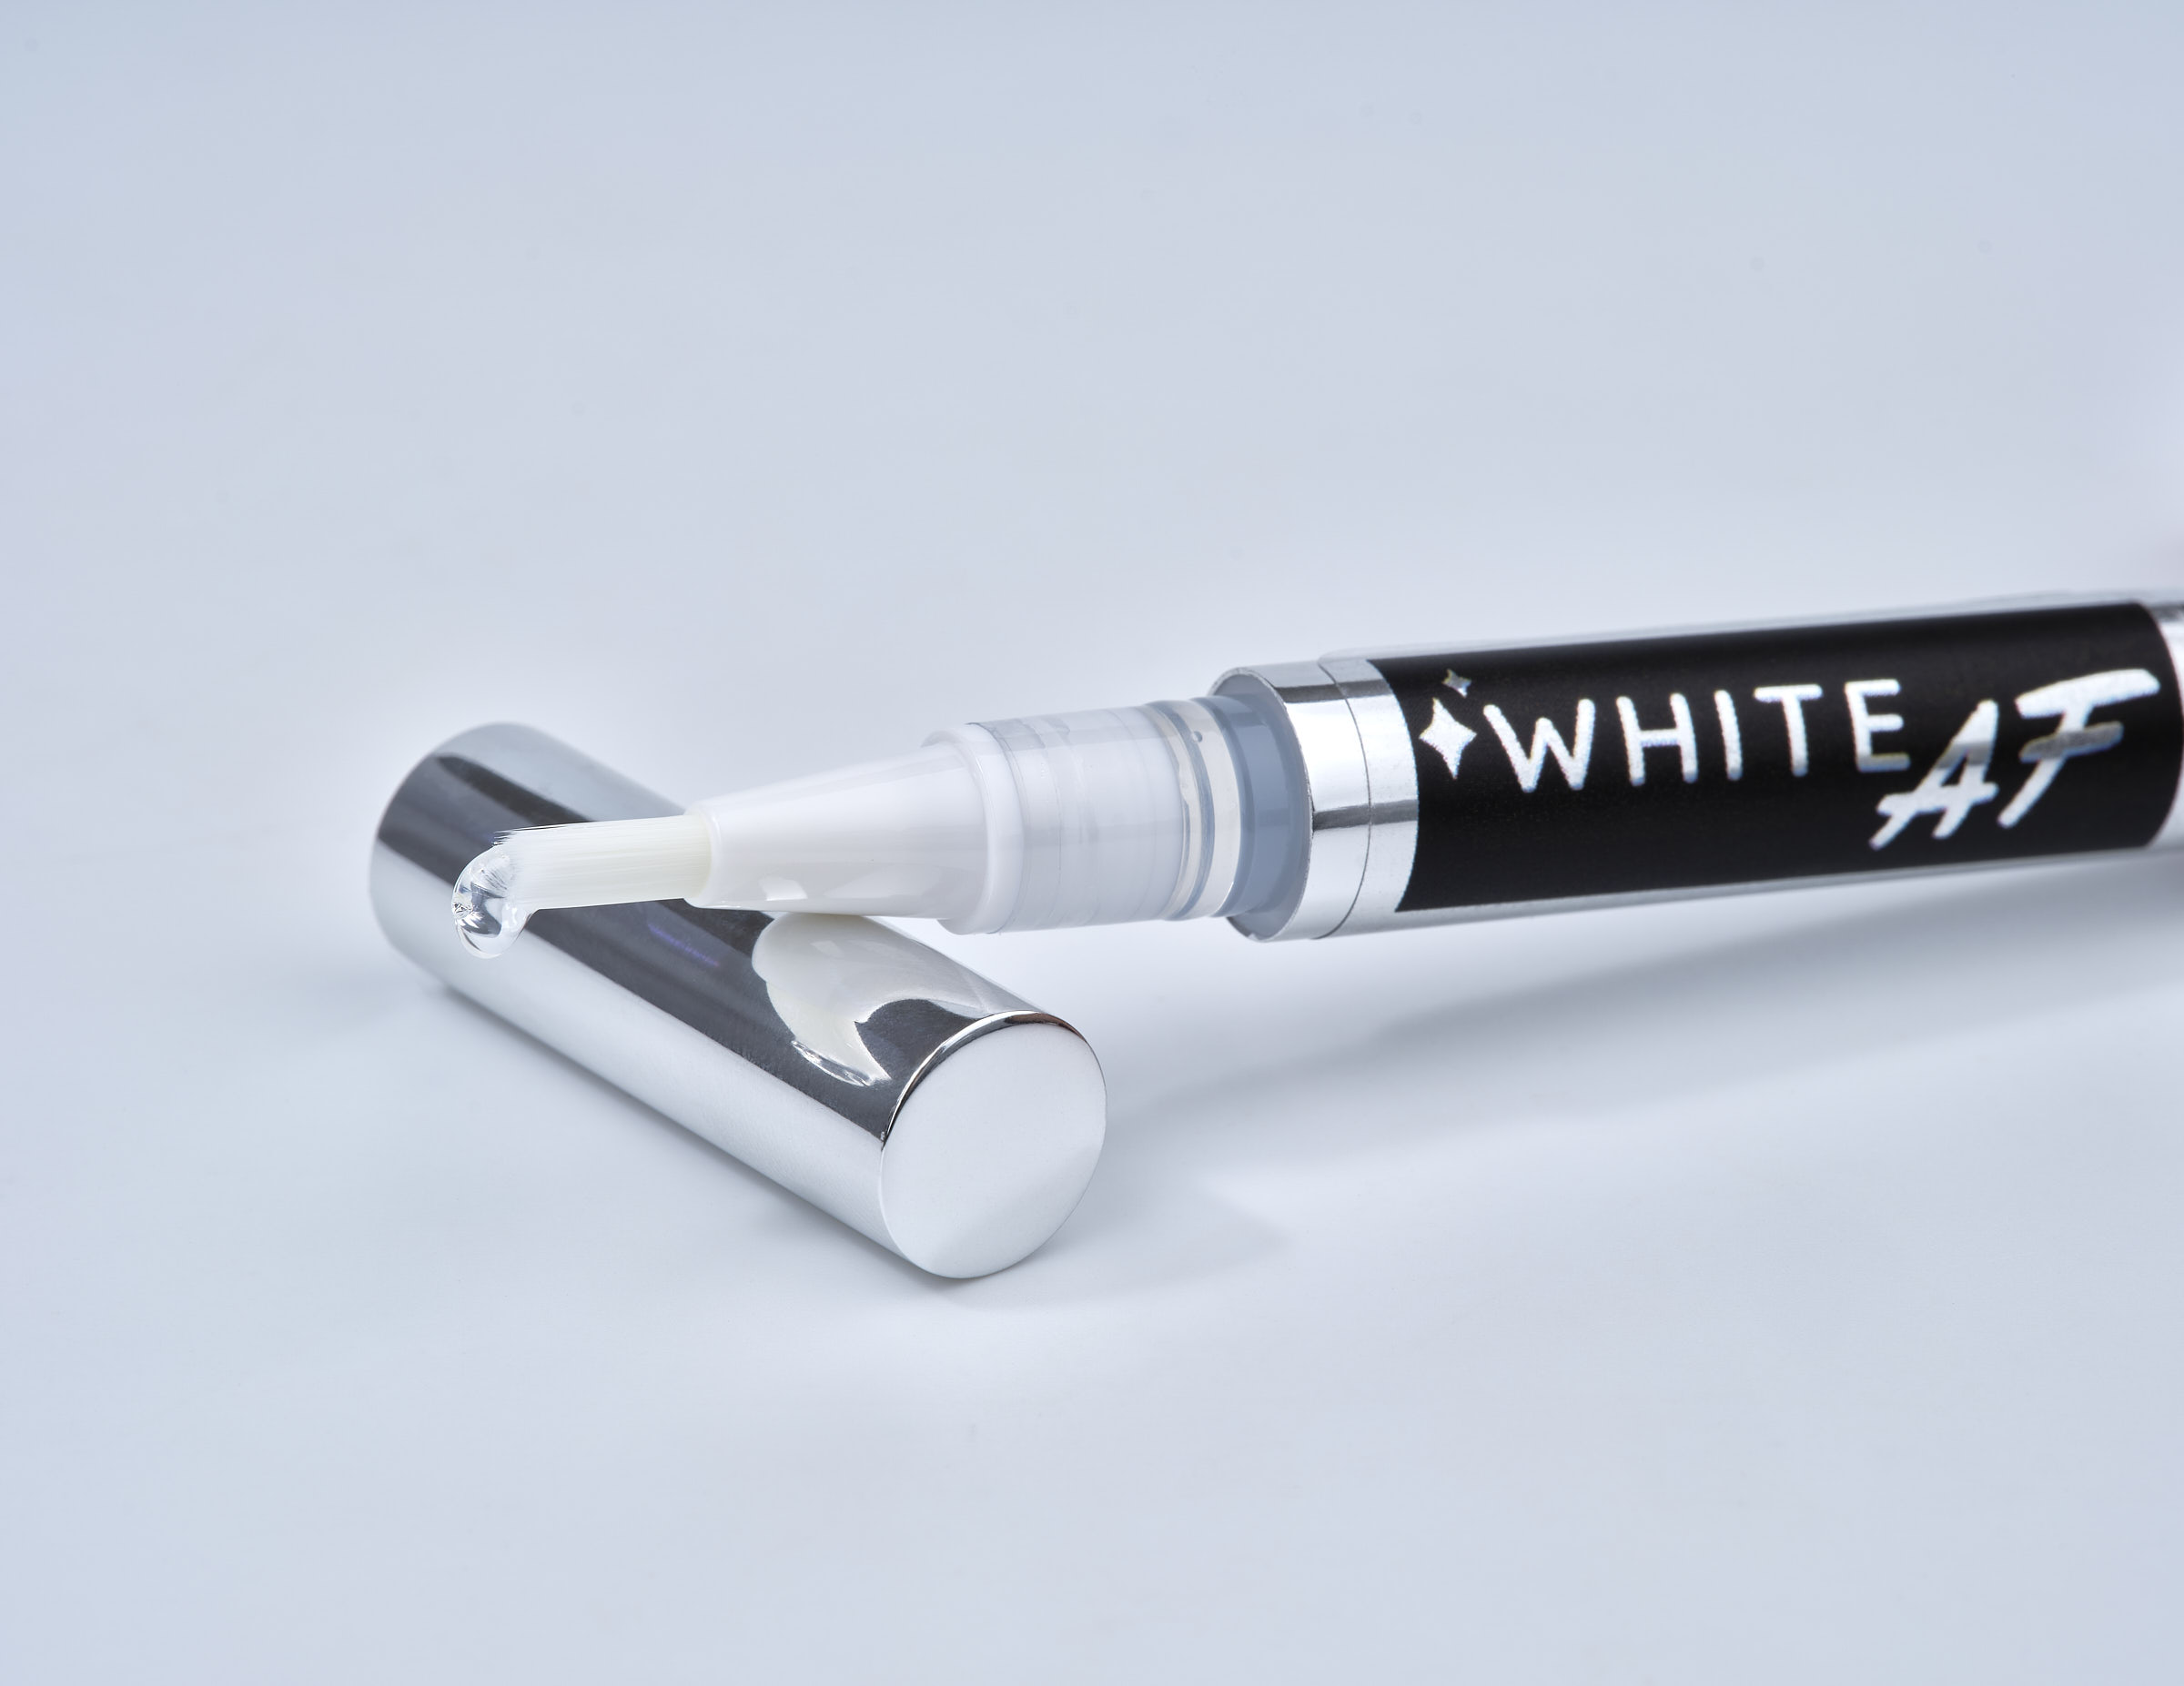 White AF travel pen Advertising product photography